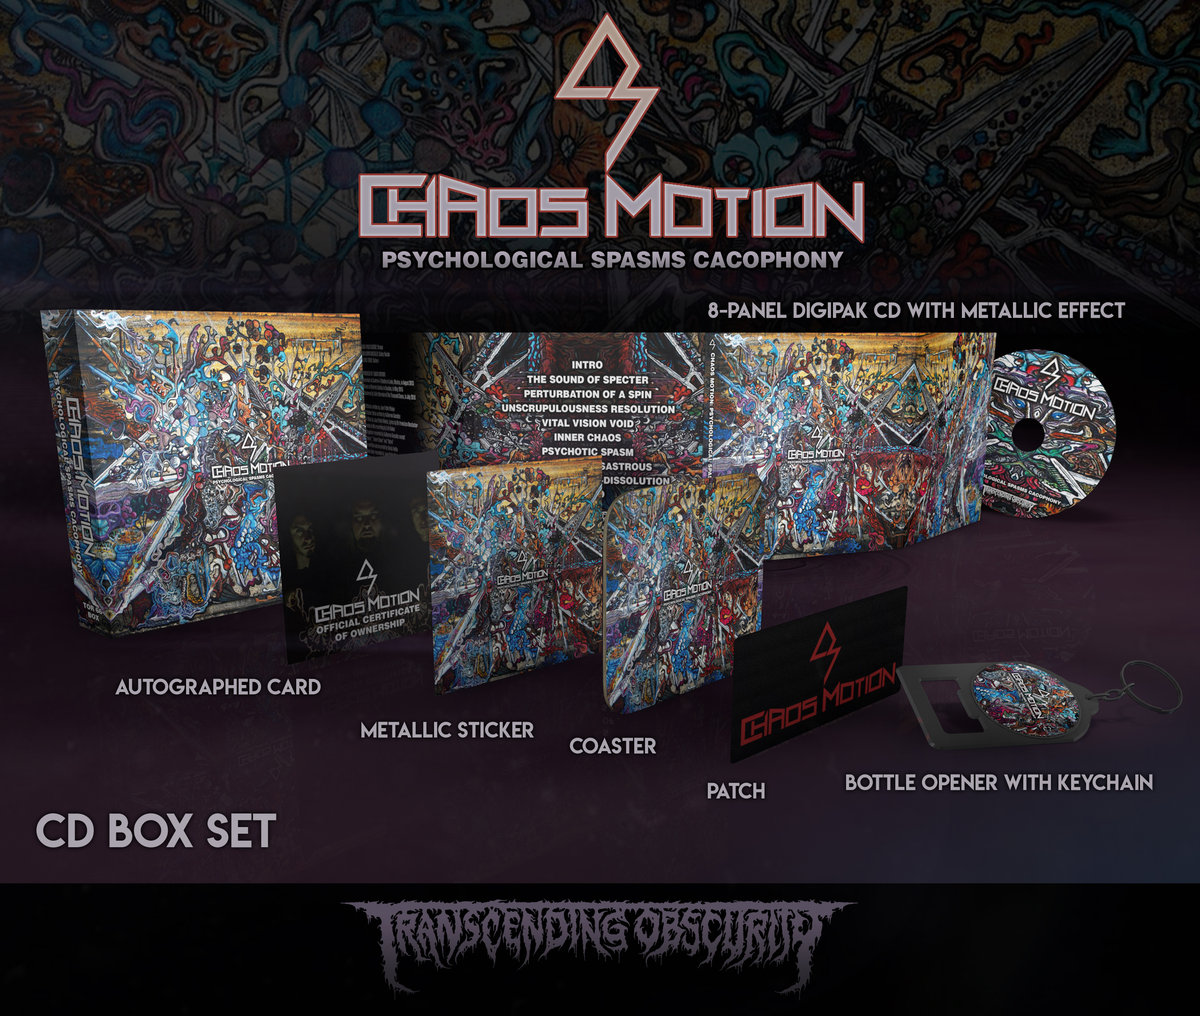 CHAOS MOTION Autographed Metallic CD Box Set - TRANSCENDING OBSCURITY